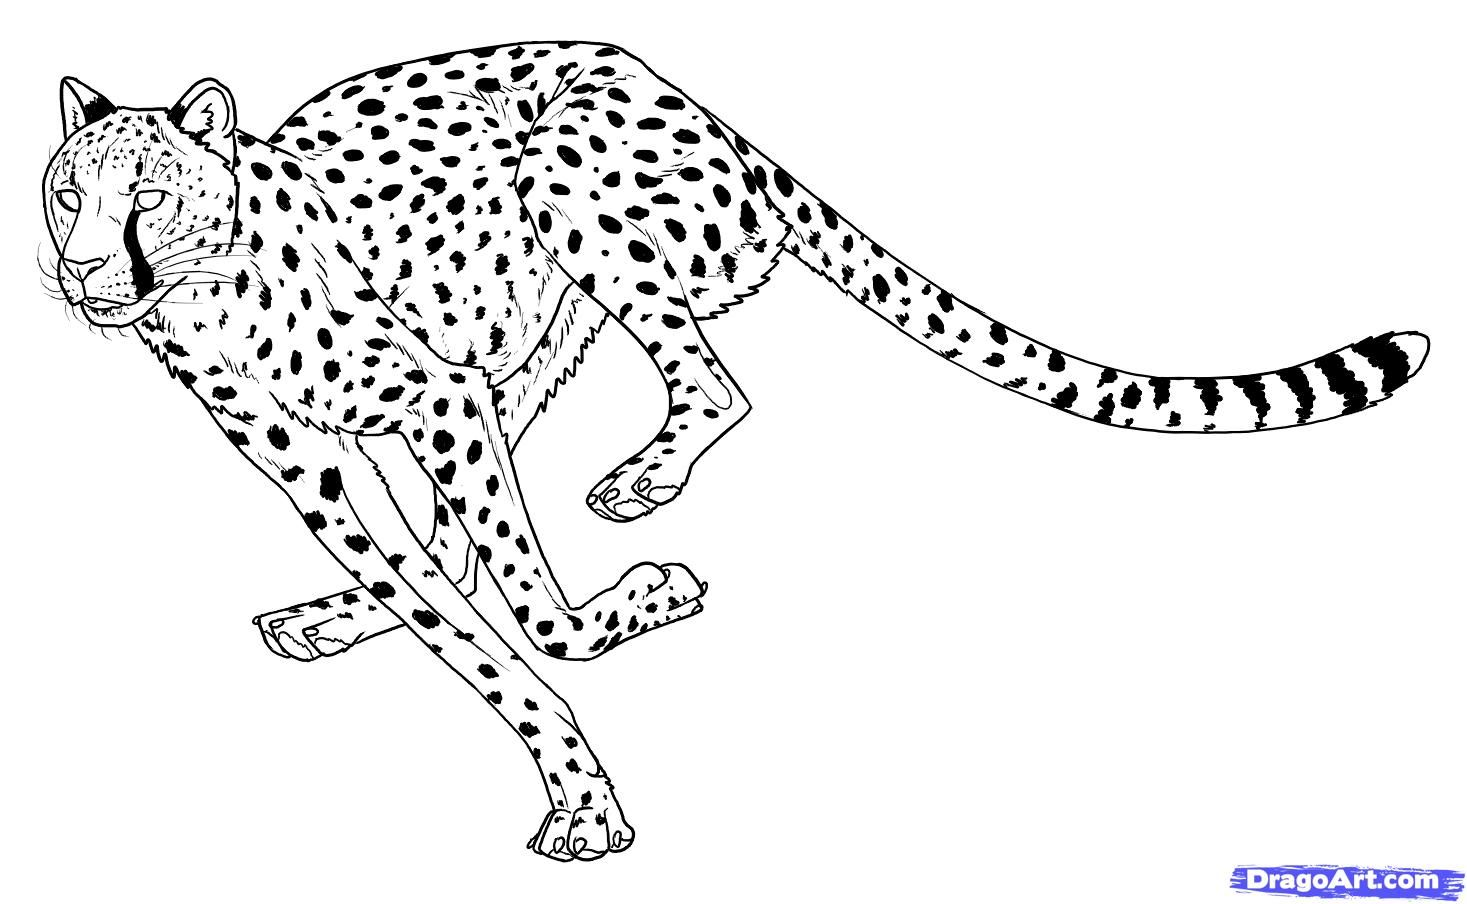 how to draw a realistic cheetah step by step how to draw a realistic cheetah step by step drawing by how realistic cheetah a to step step draw